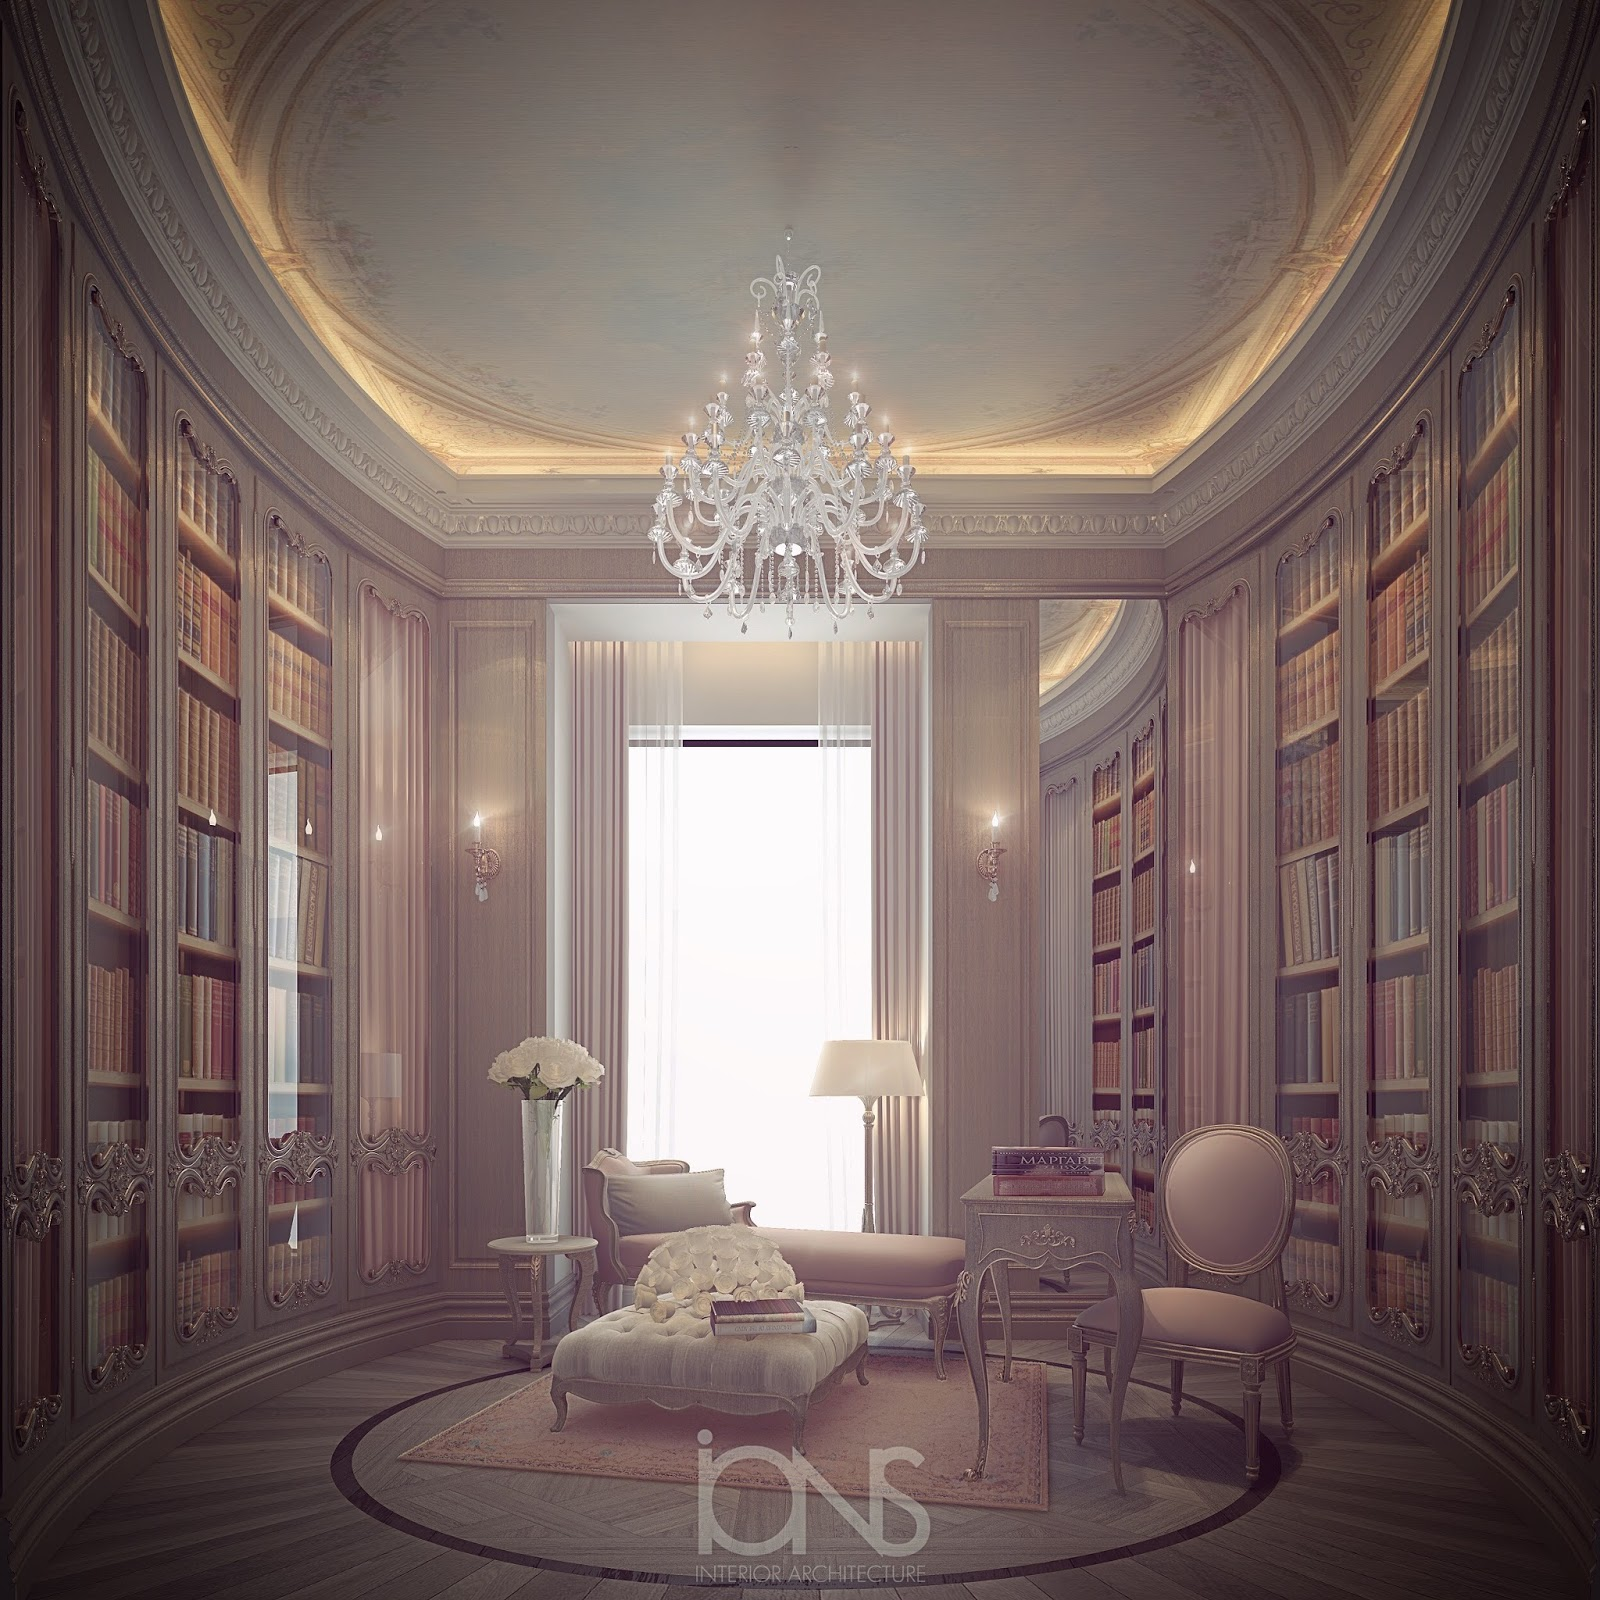 Ions Interior Design Dubai exploring luxurious homes: cosy reading room design